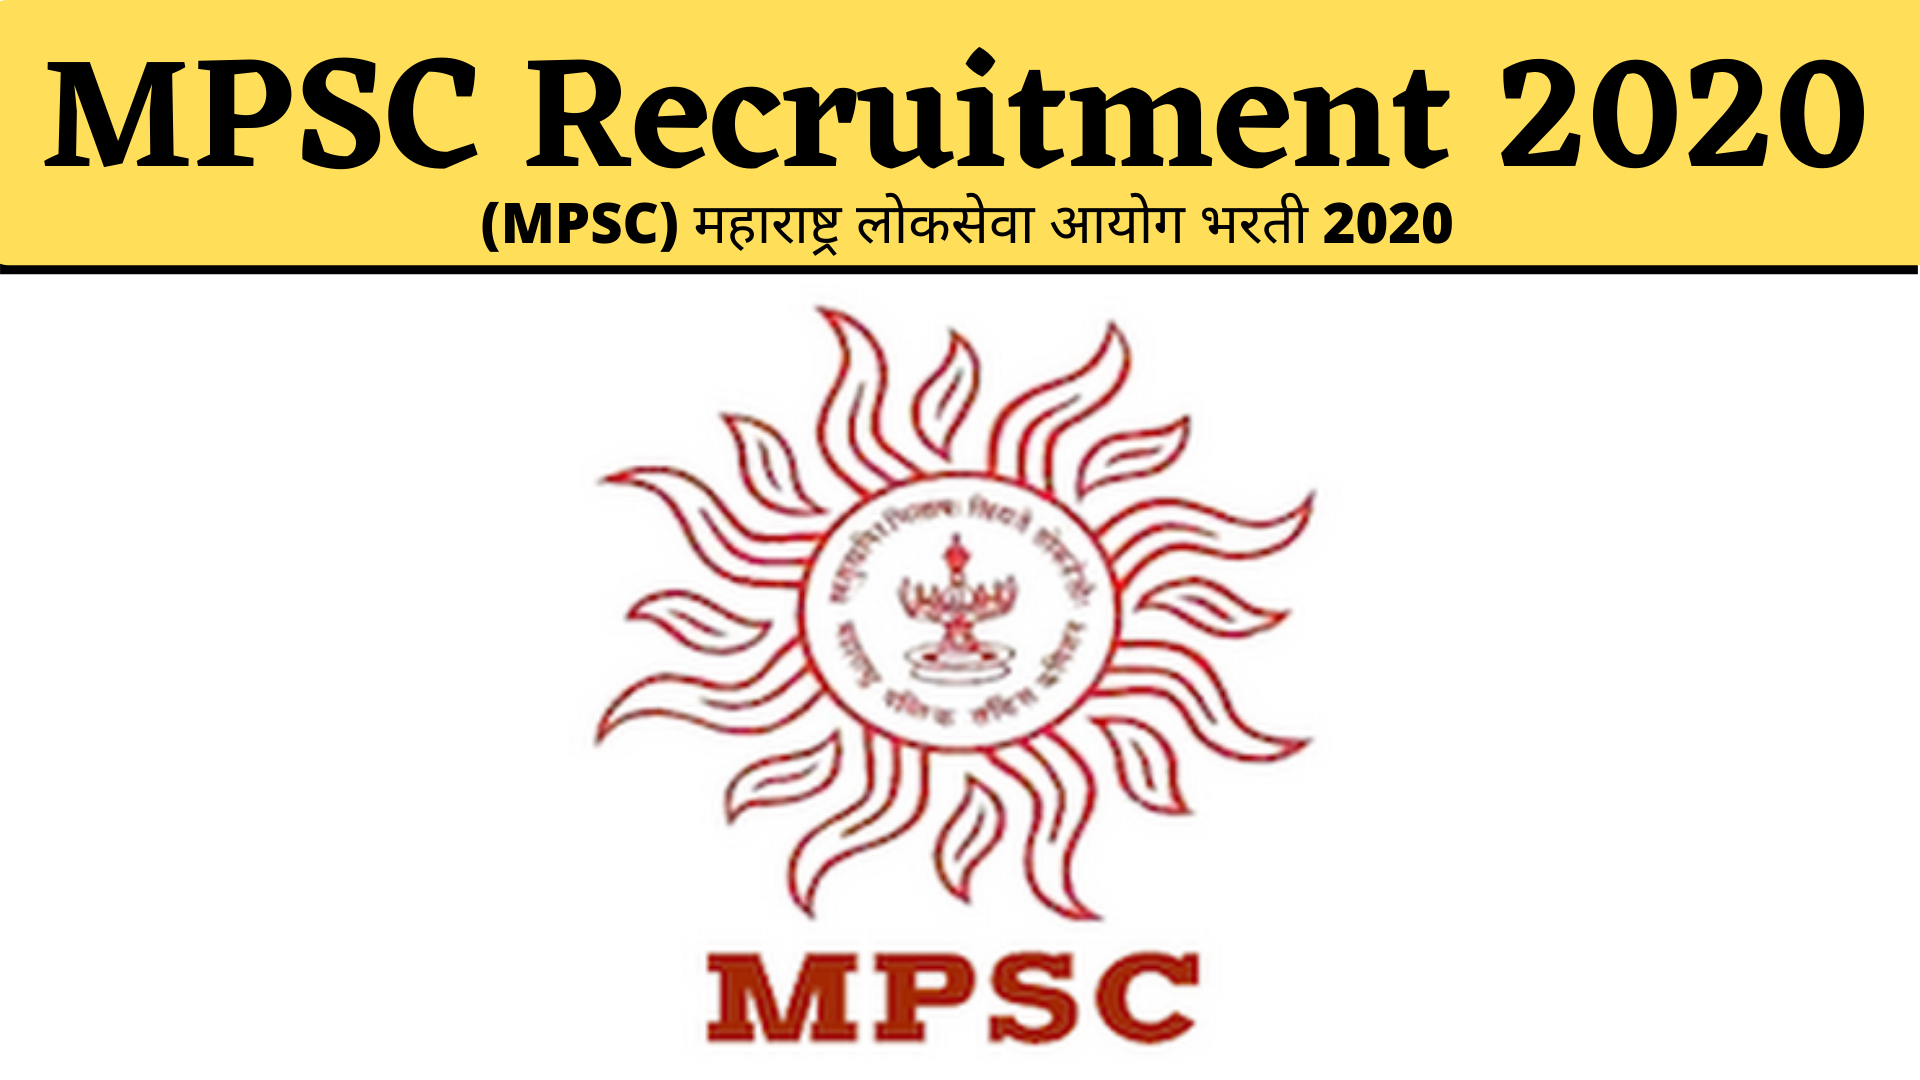 Maha MPSC Recruitment 2020